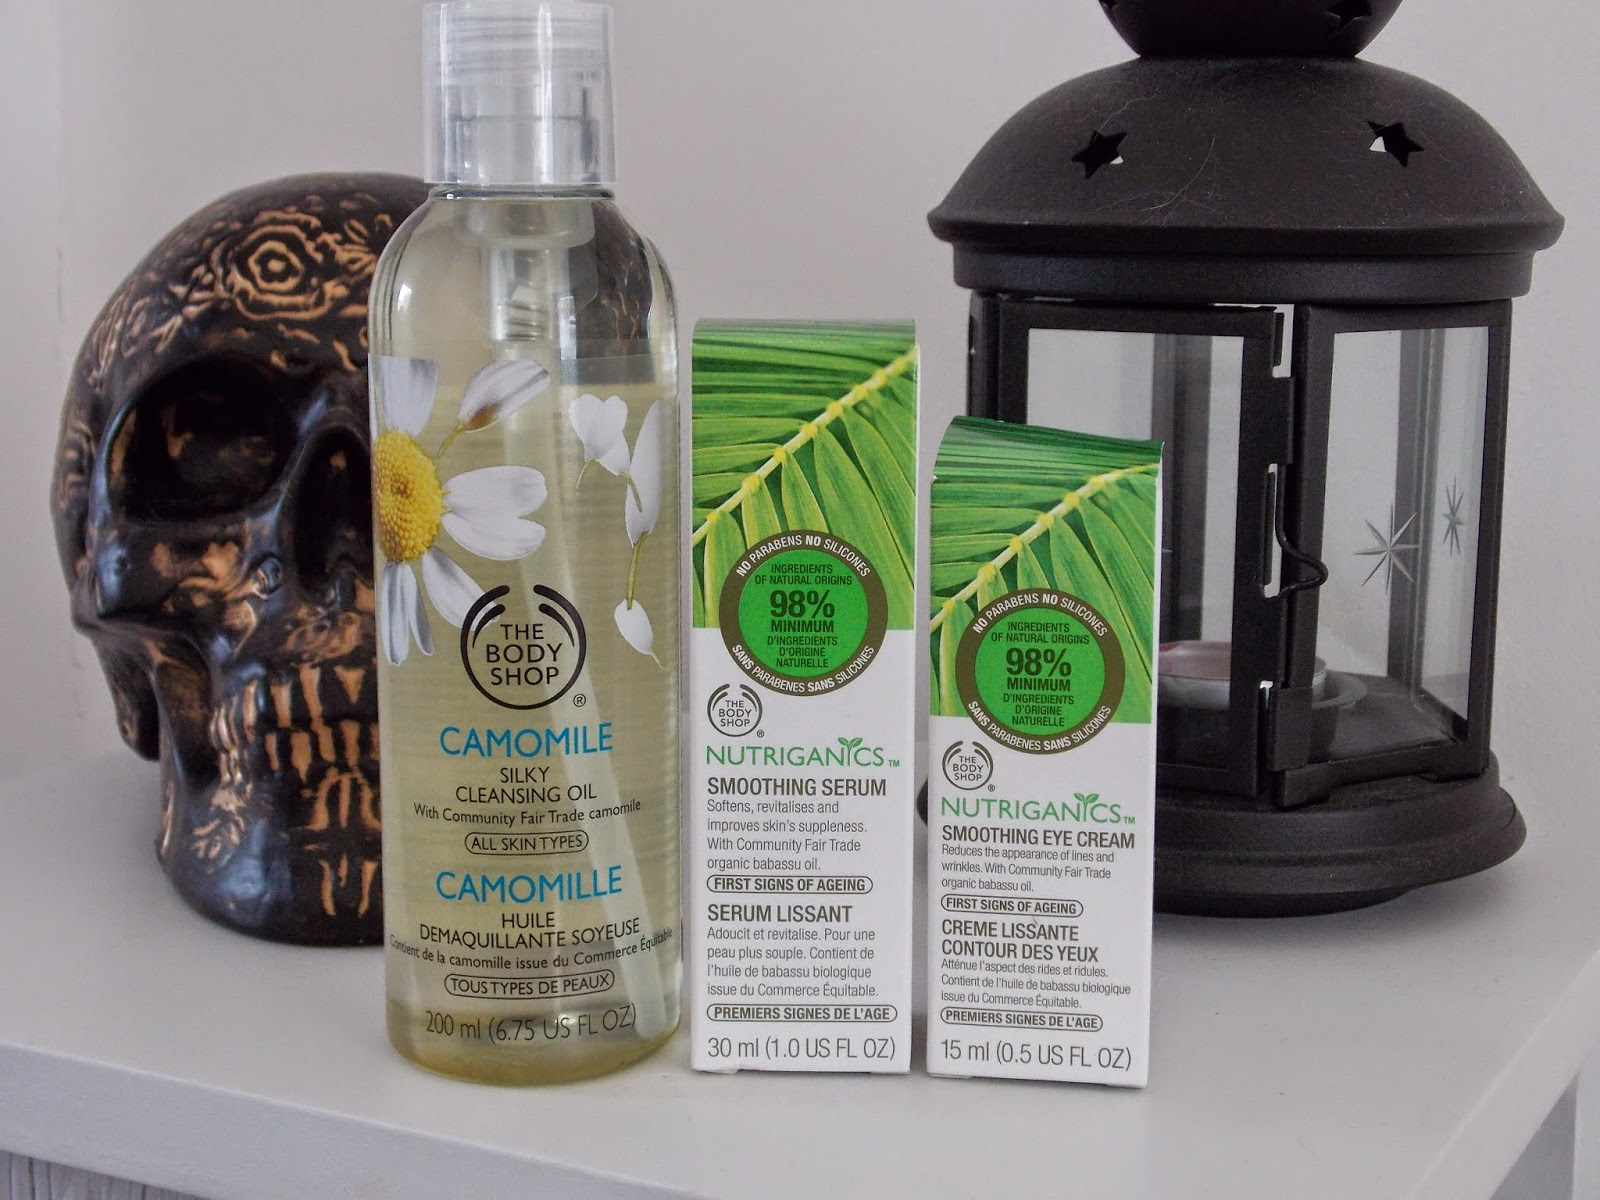 The Body Shop Camomile Silky Cleansing Oil, The Body Shop Nutriganics Smoothing Serum and The Body Shop Smoothing Eye Cream